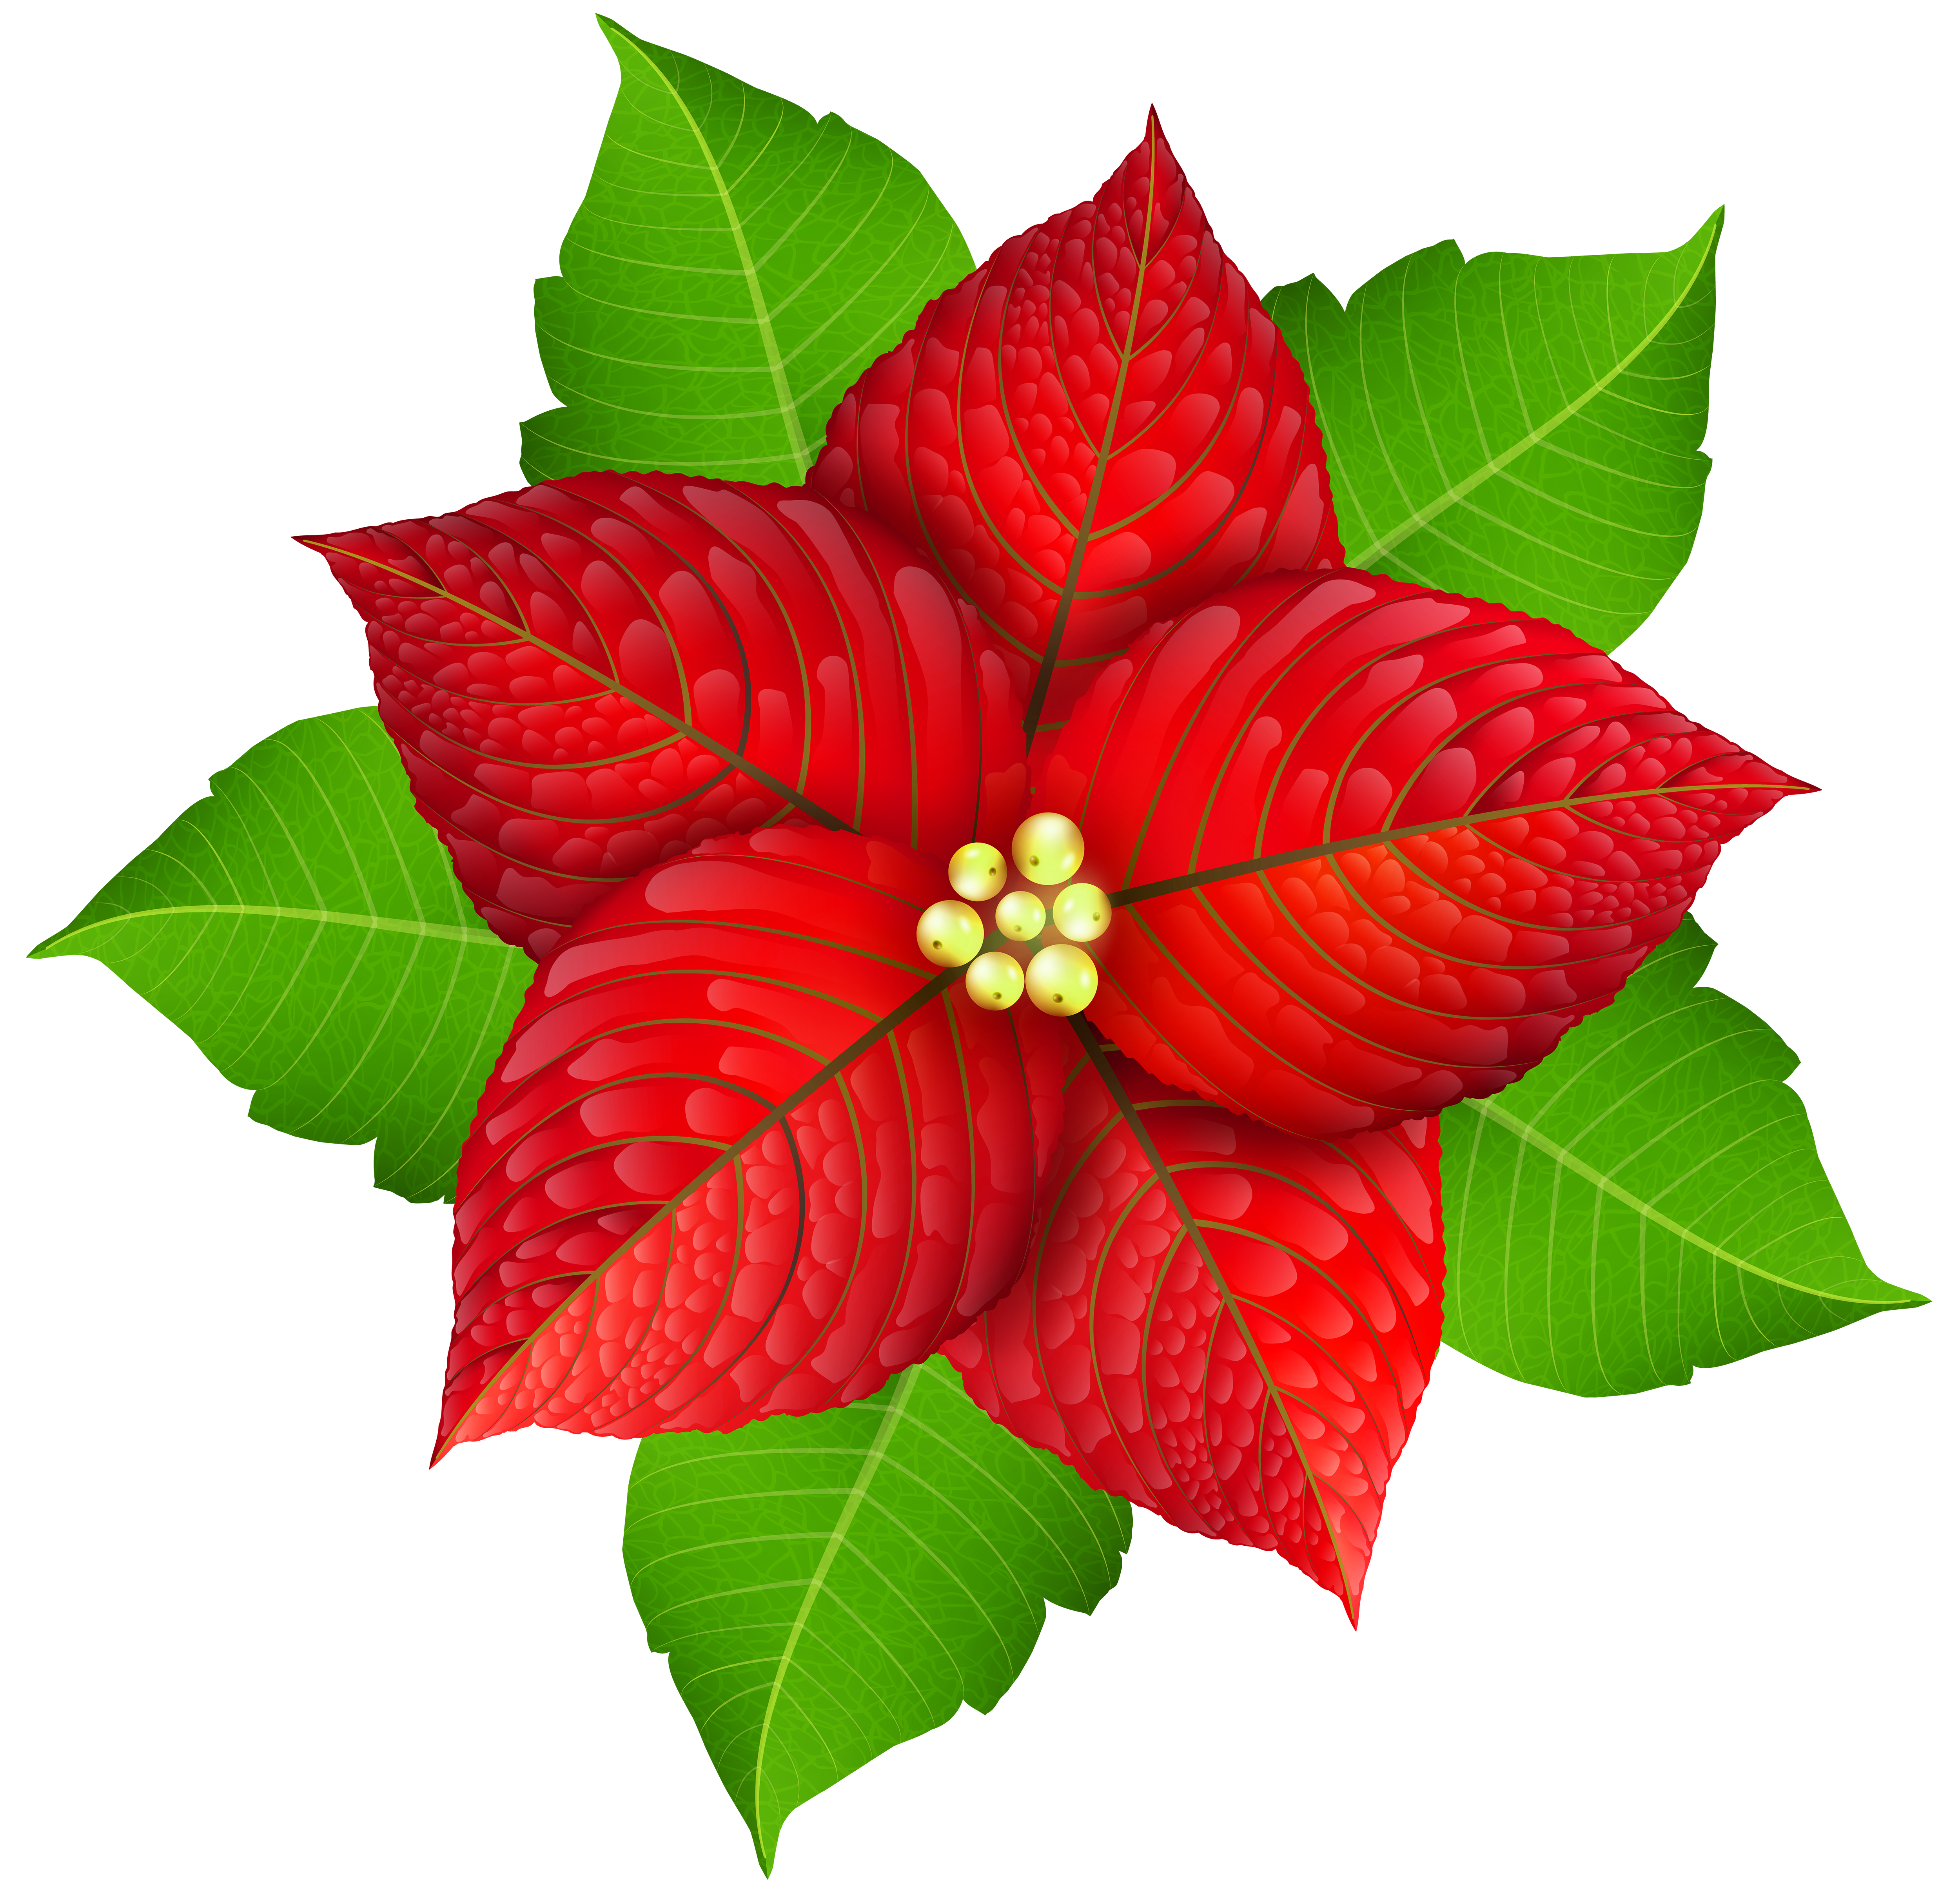 Poinsettia transparent. Christmas png image gallery